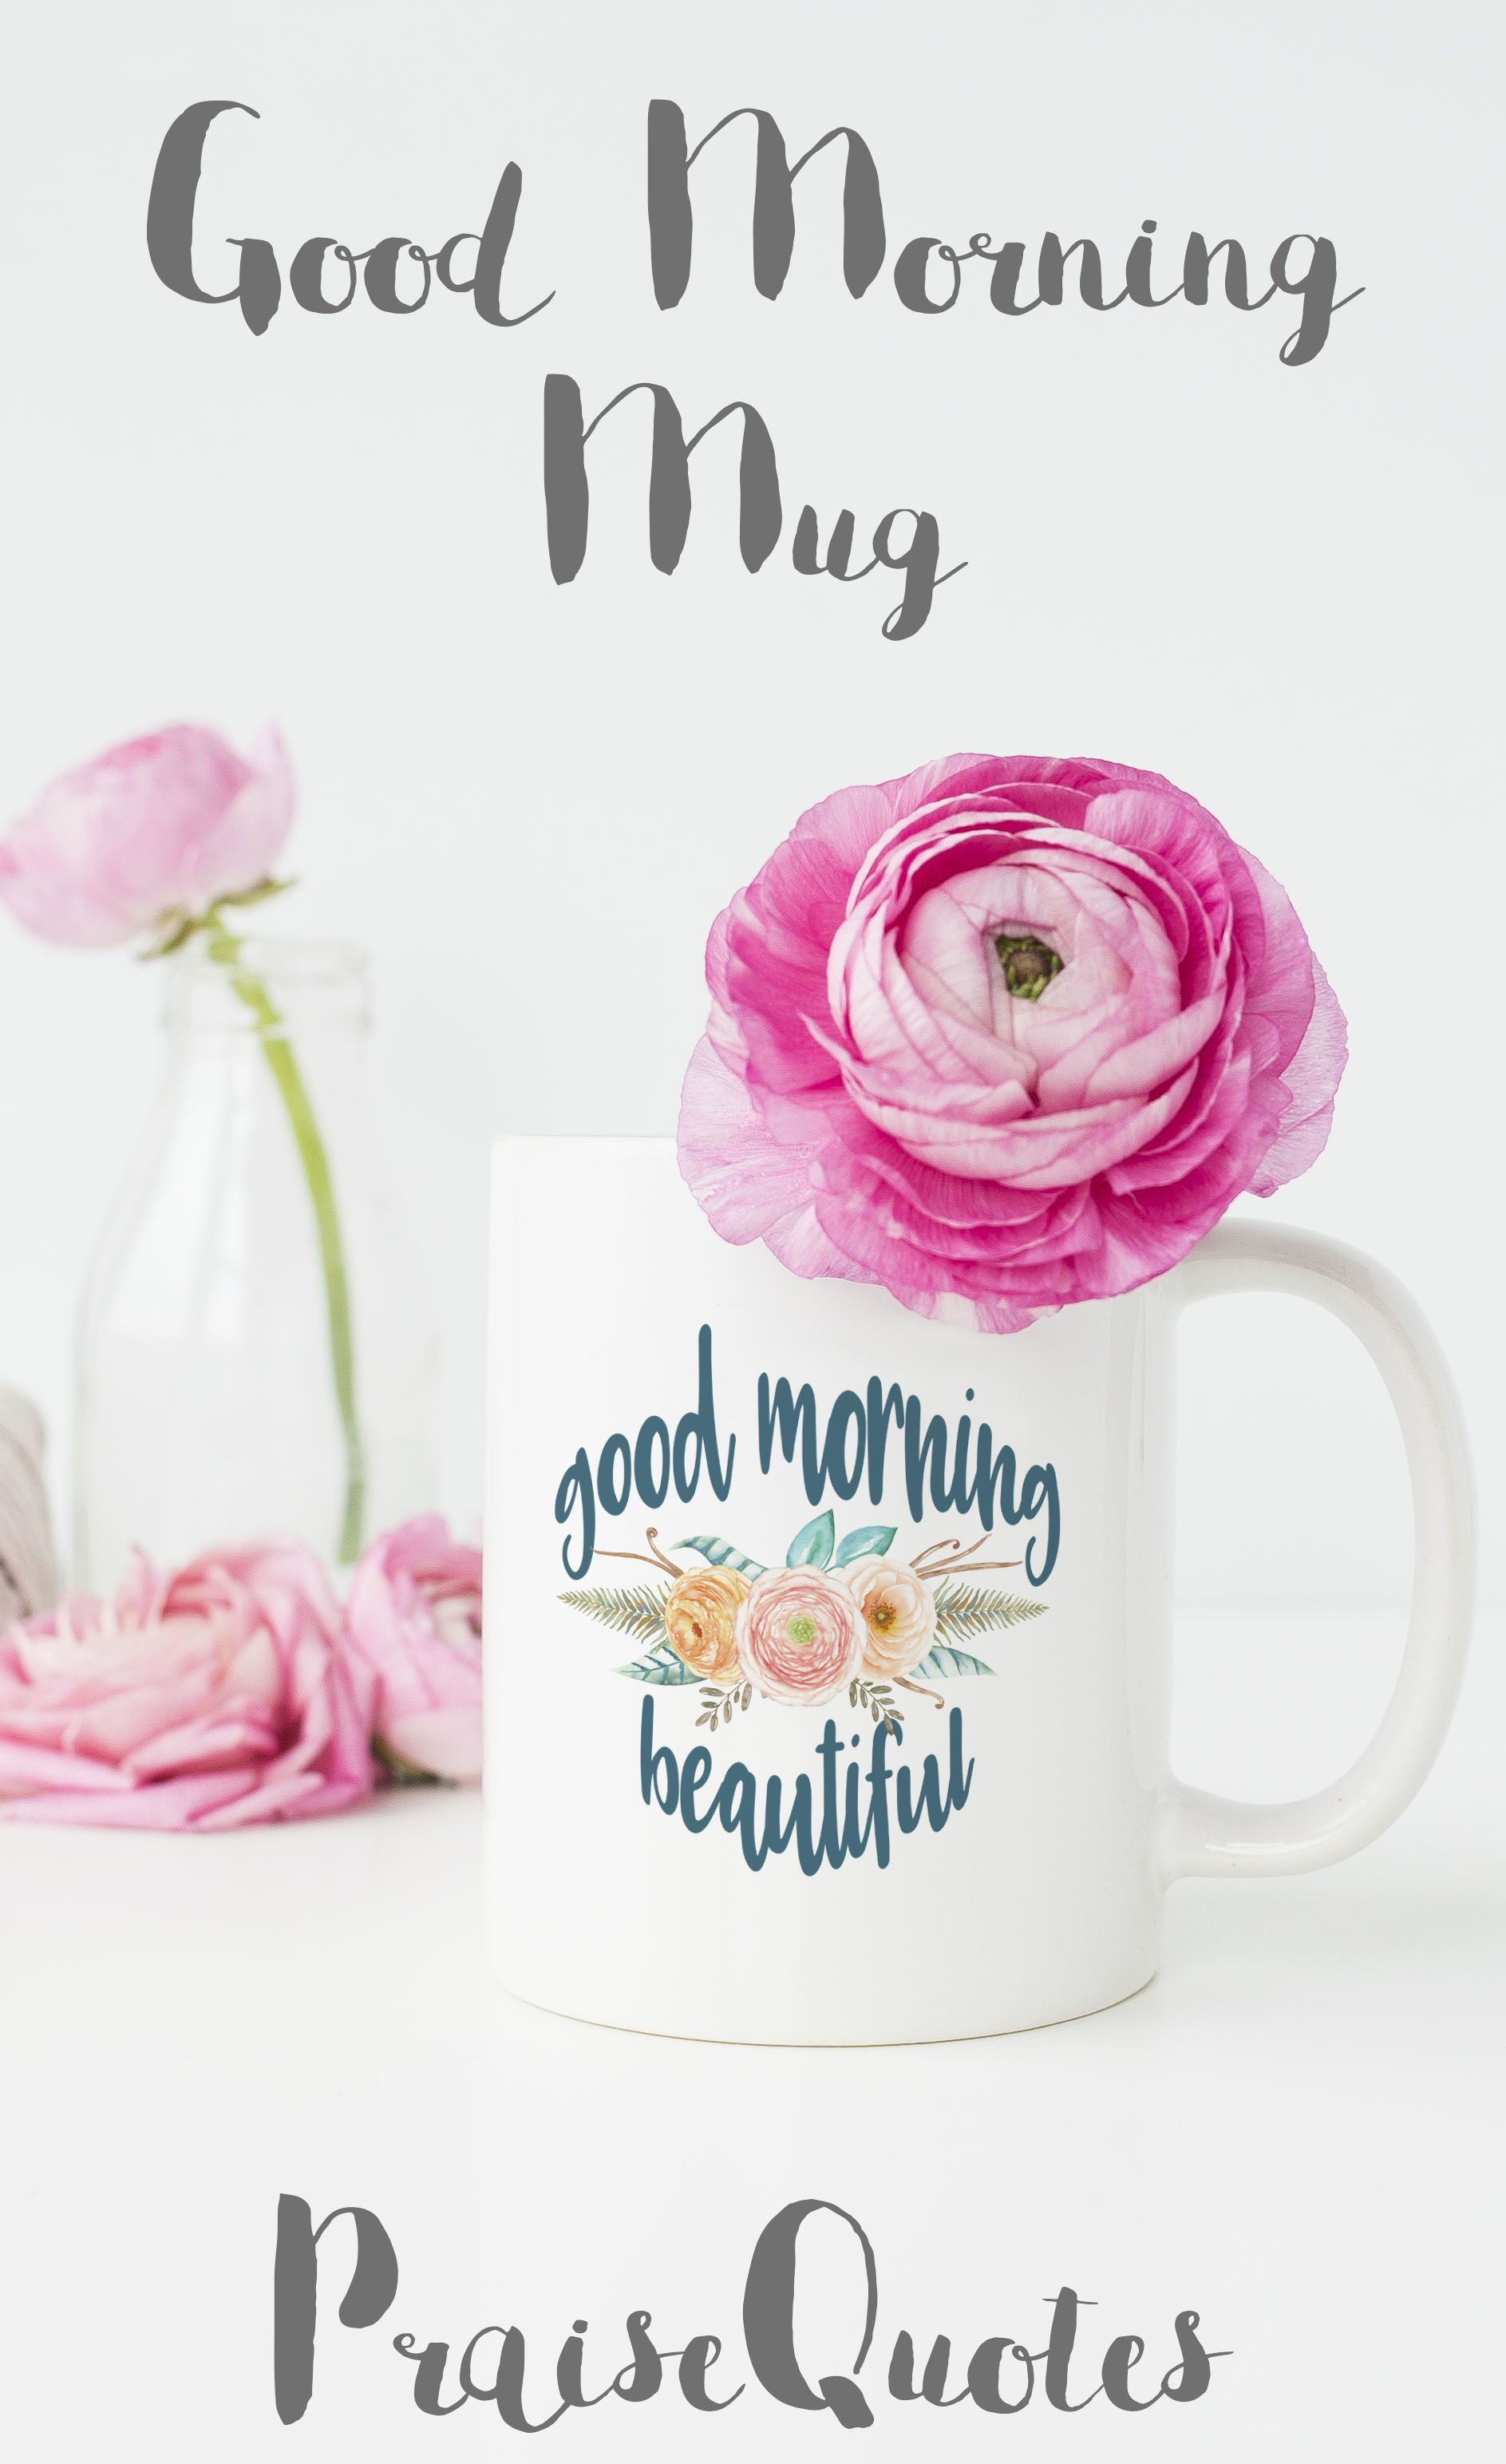 Good morning beautiful letter